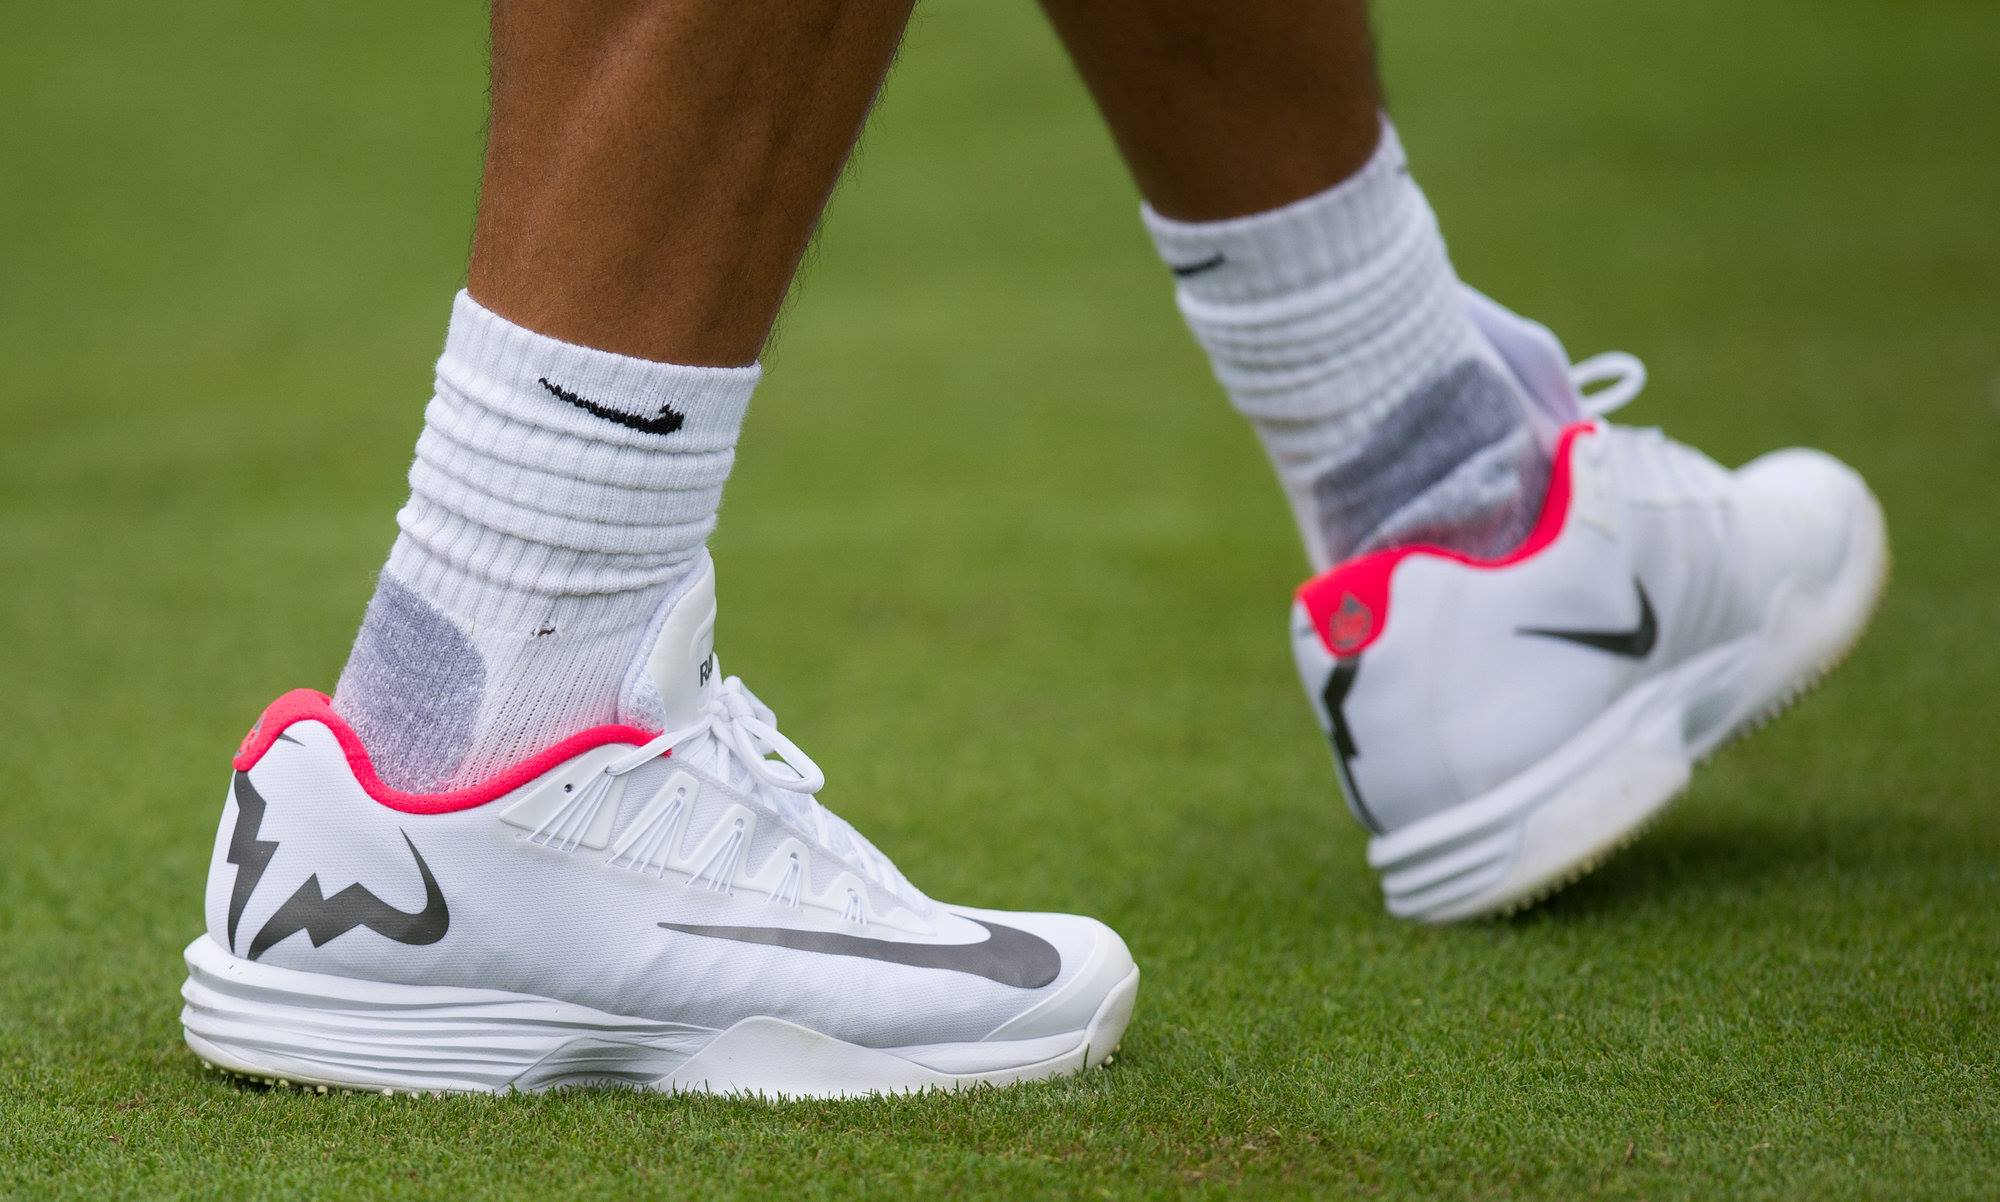 rafael nadal nike tennis shoes for Wimbledon 2017